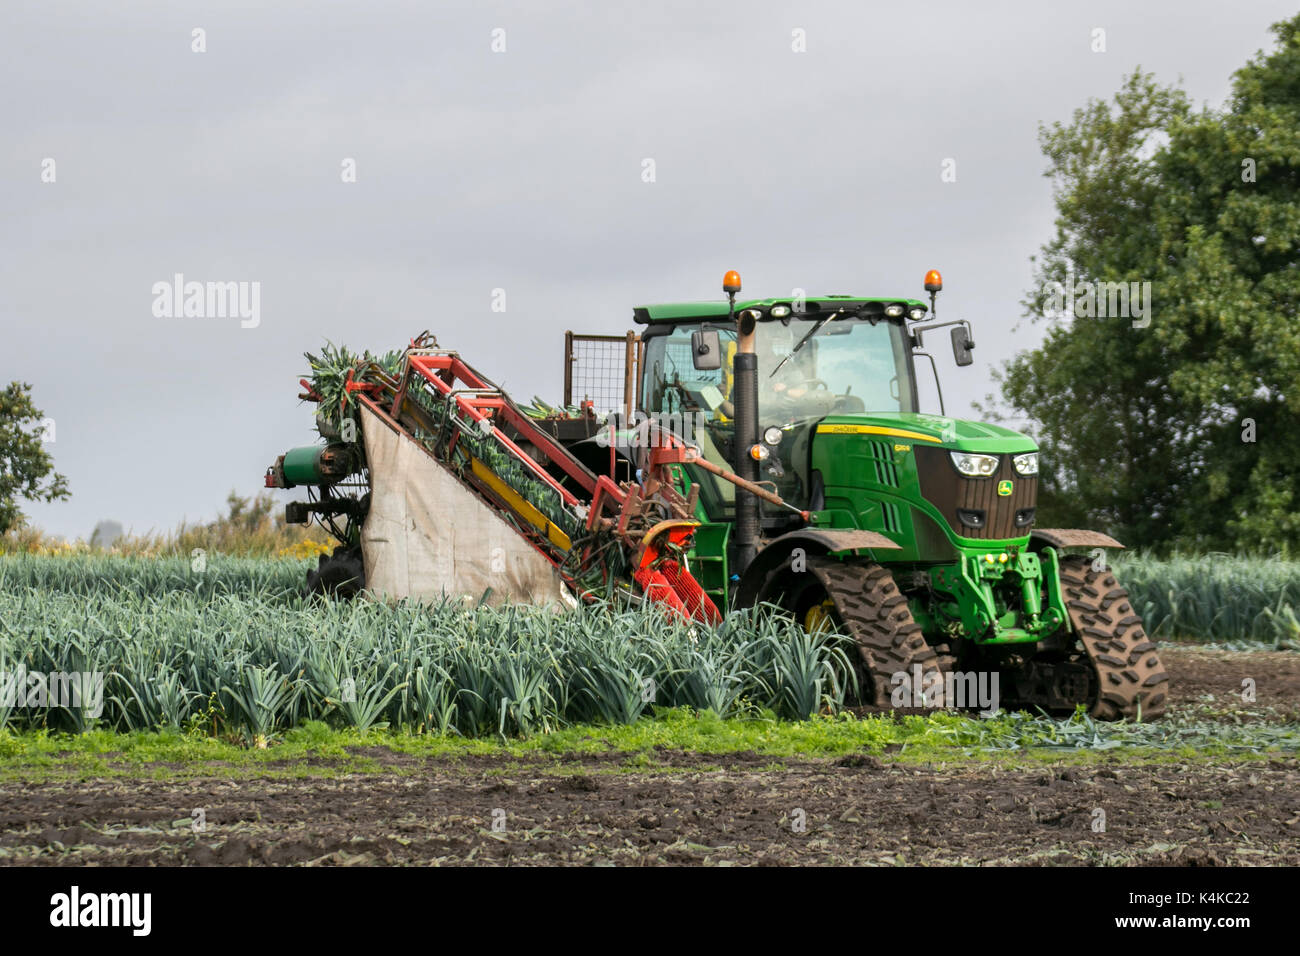 Burscough, Lancashire.  7th September, 2017. UK Weather. Drying conditions for harvesting leeks with a John Deere 6210R tracked automatic harvester, guided by satellite a form of autonomous technology. It is considered driverless because it can operate without the presence of a human inside the tractor itself. Like other ground vehicles, they are programmed to independently observe their position, decide speed and avoid obstacles such as people, or objects in the field, while performing their task whilst using GPS and wireless technologies to farm land. Credit; MediaWorldImages/AlamyLiveNews - Stock Image